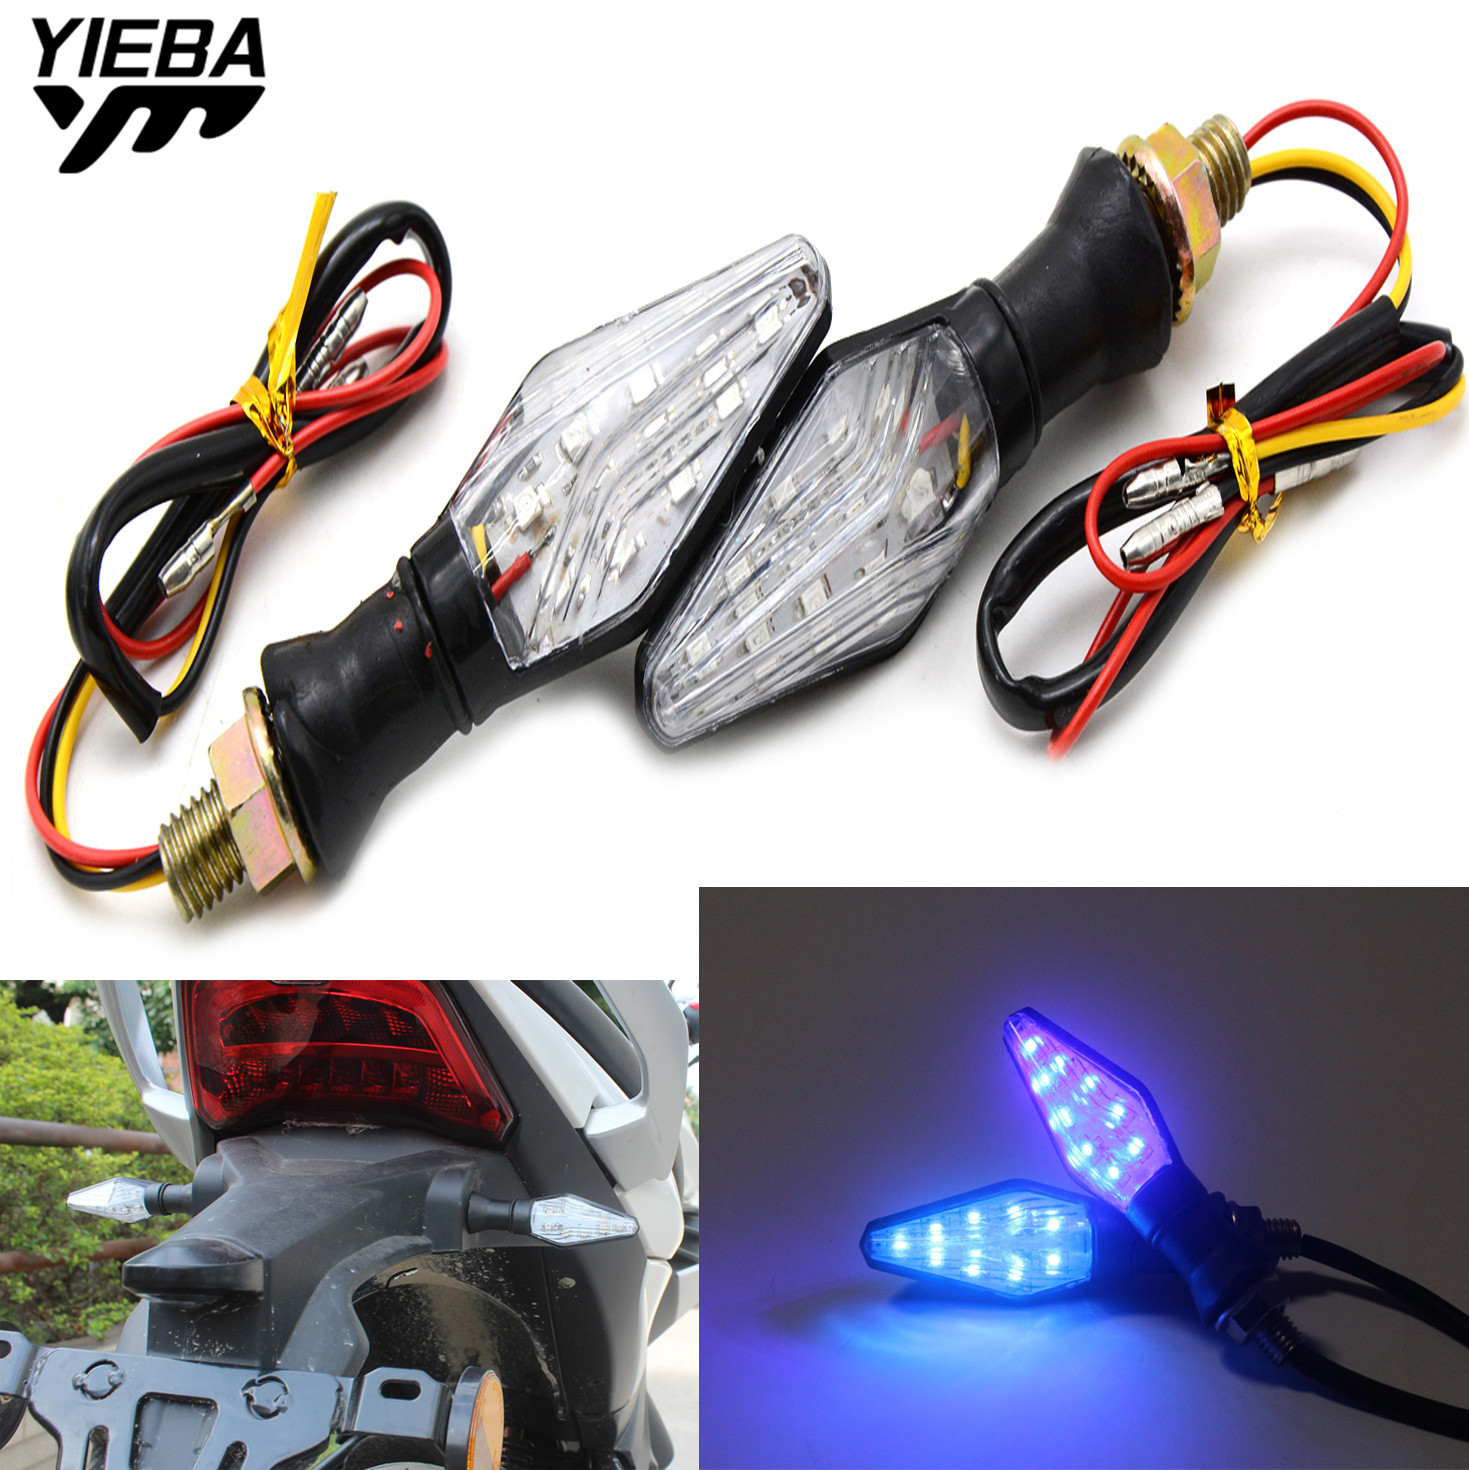 Motorcycle Accessories Light LED Turn Signal Light/Lamp For <font><b>SUZUKI</b></font> <font><b>GSXR1000</b></font> <font><b>K7</b></font> GSXR 1000 GSX R1000 GSXR-1000 B-KING SV650/S MT07 image